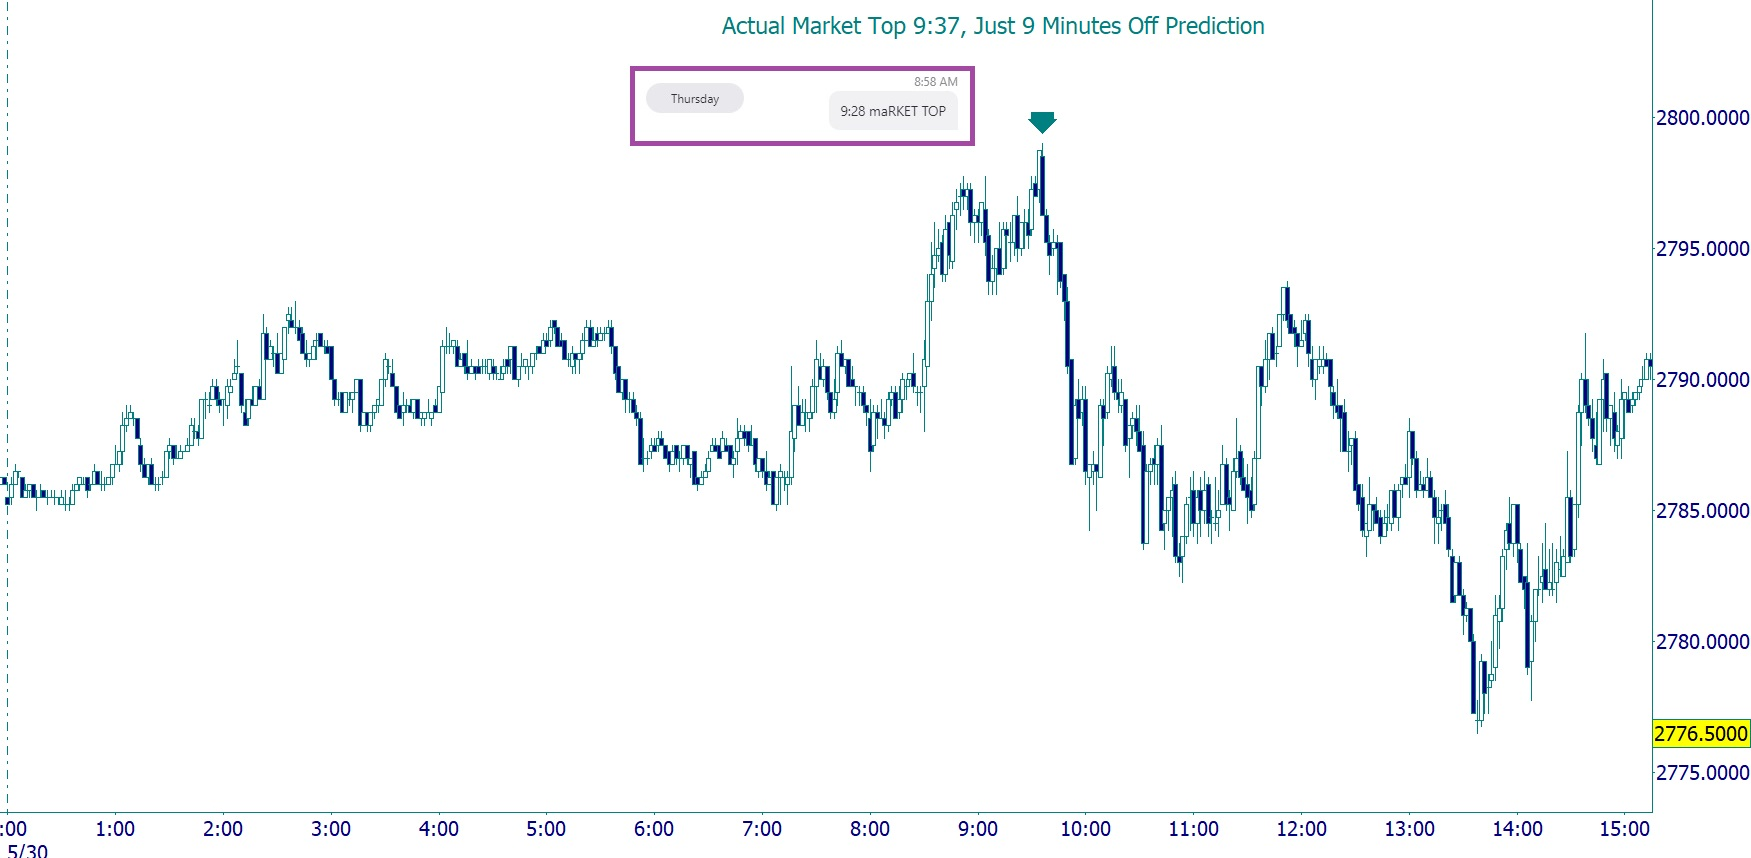 5-30 ES 2min Market Top Prediction